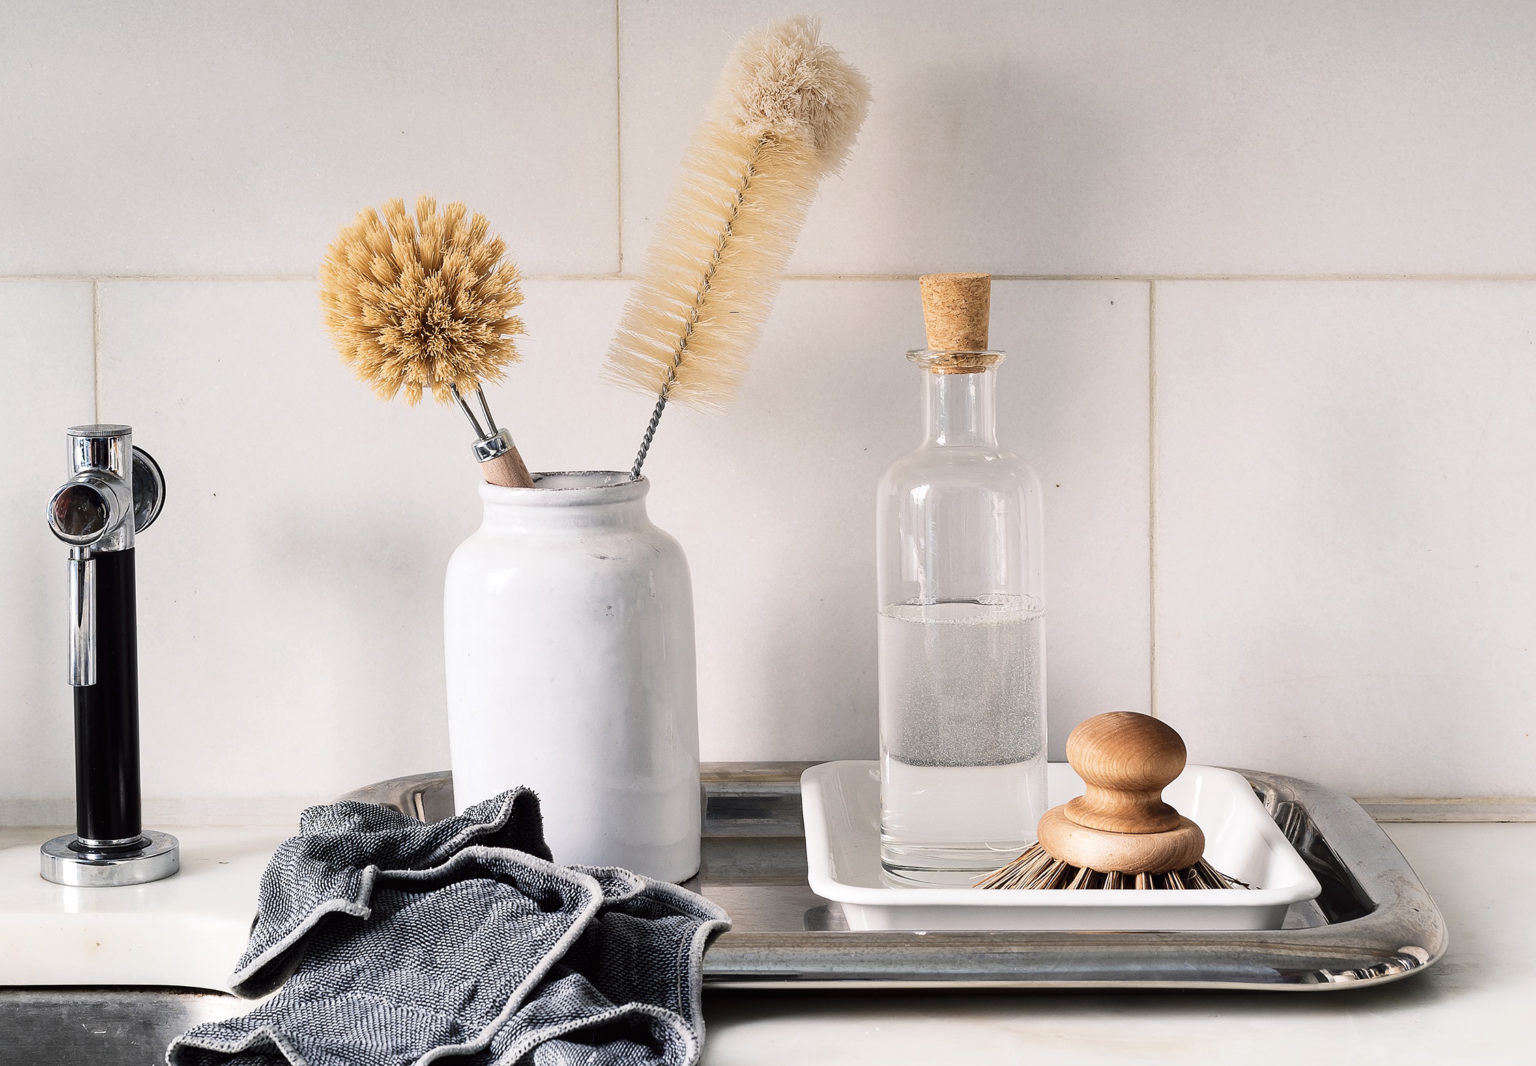 Organized Home Book, Sink Detail Image by Matthew Williams